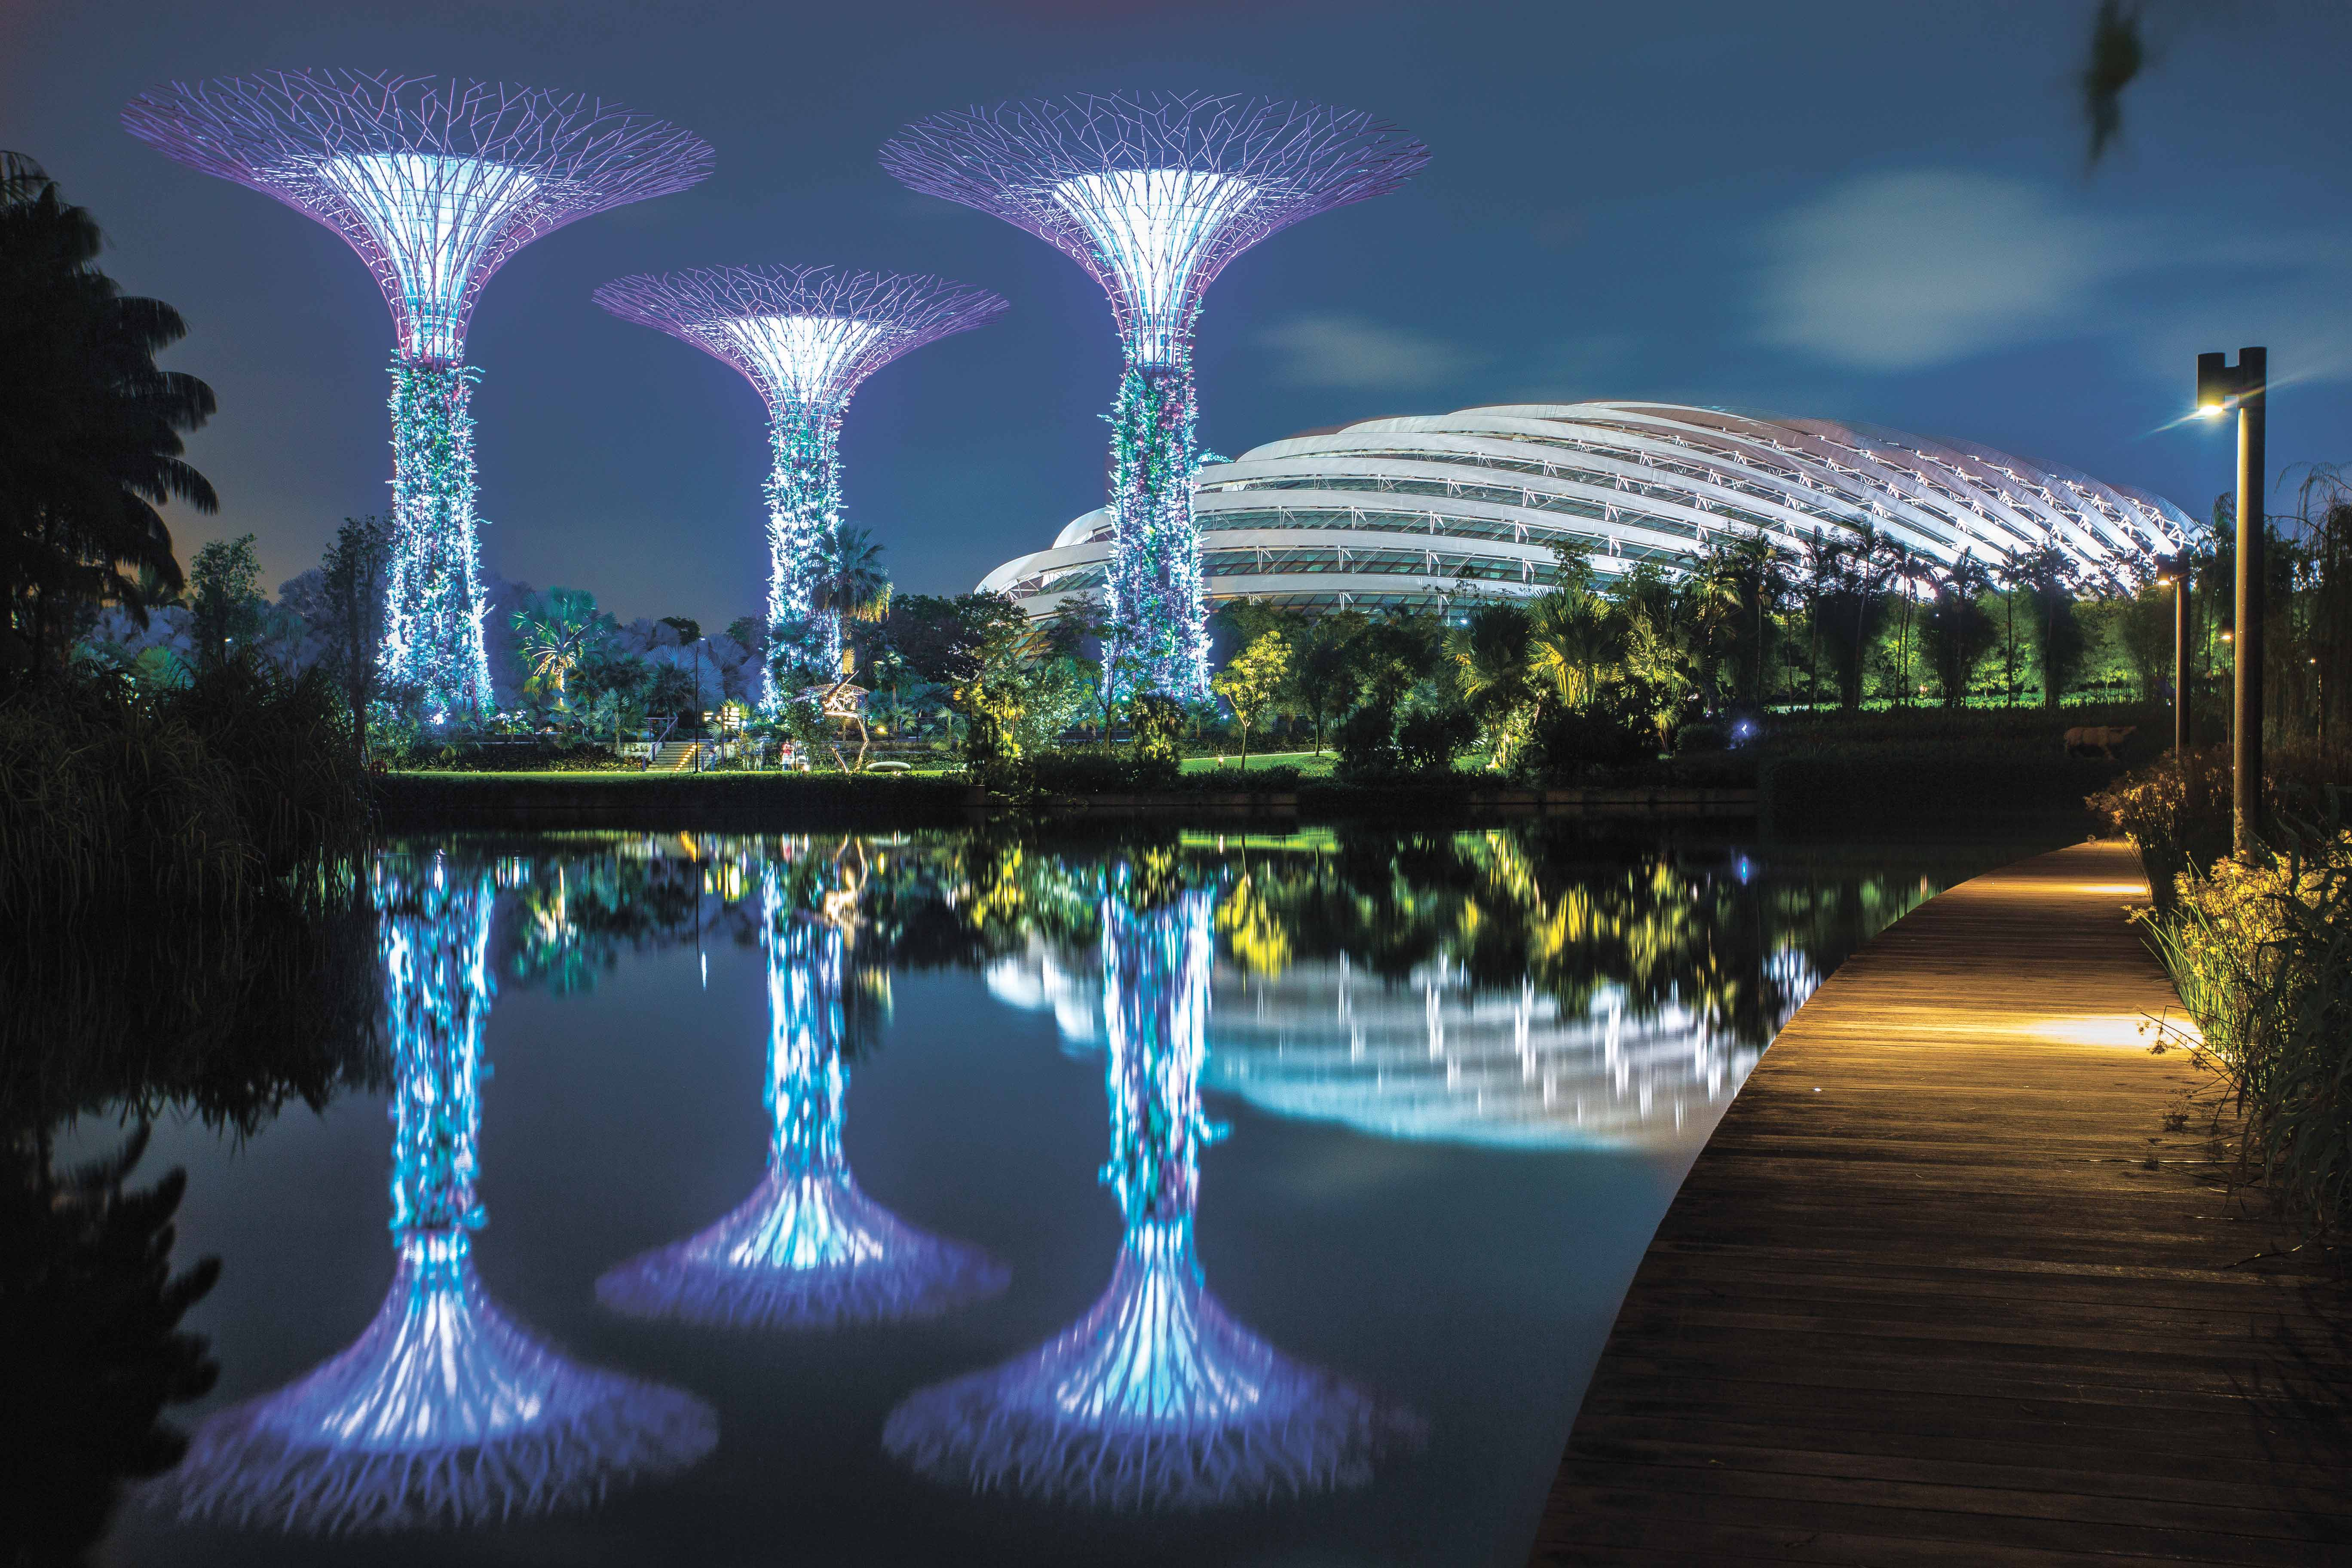 GARDENS BY THE BAY. Global editing using Lightroom 5.